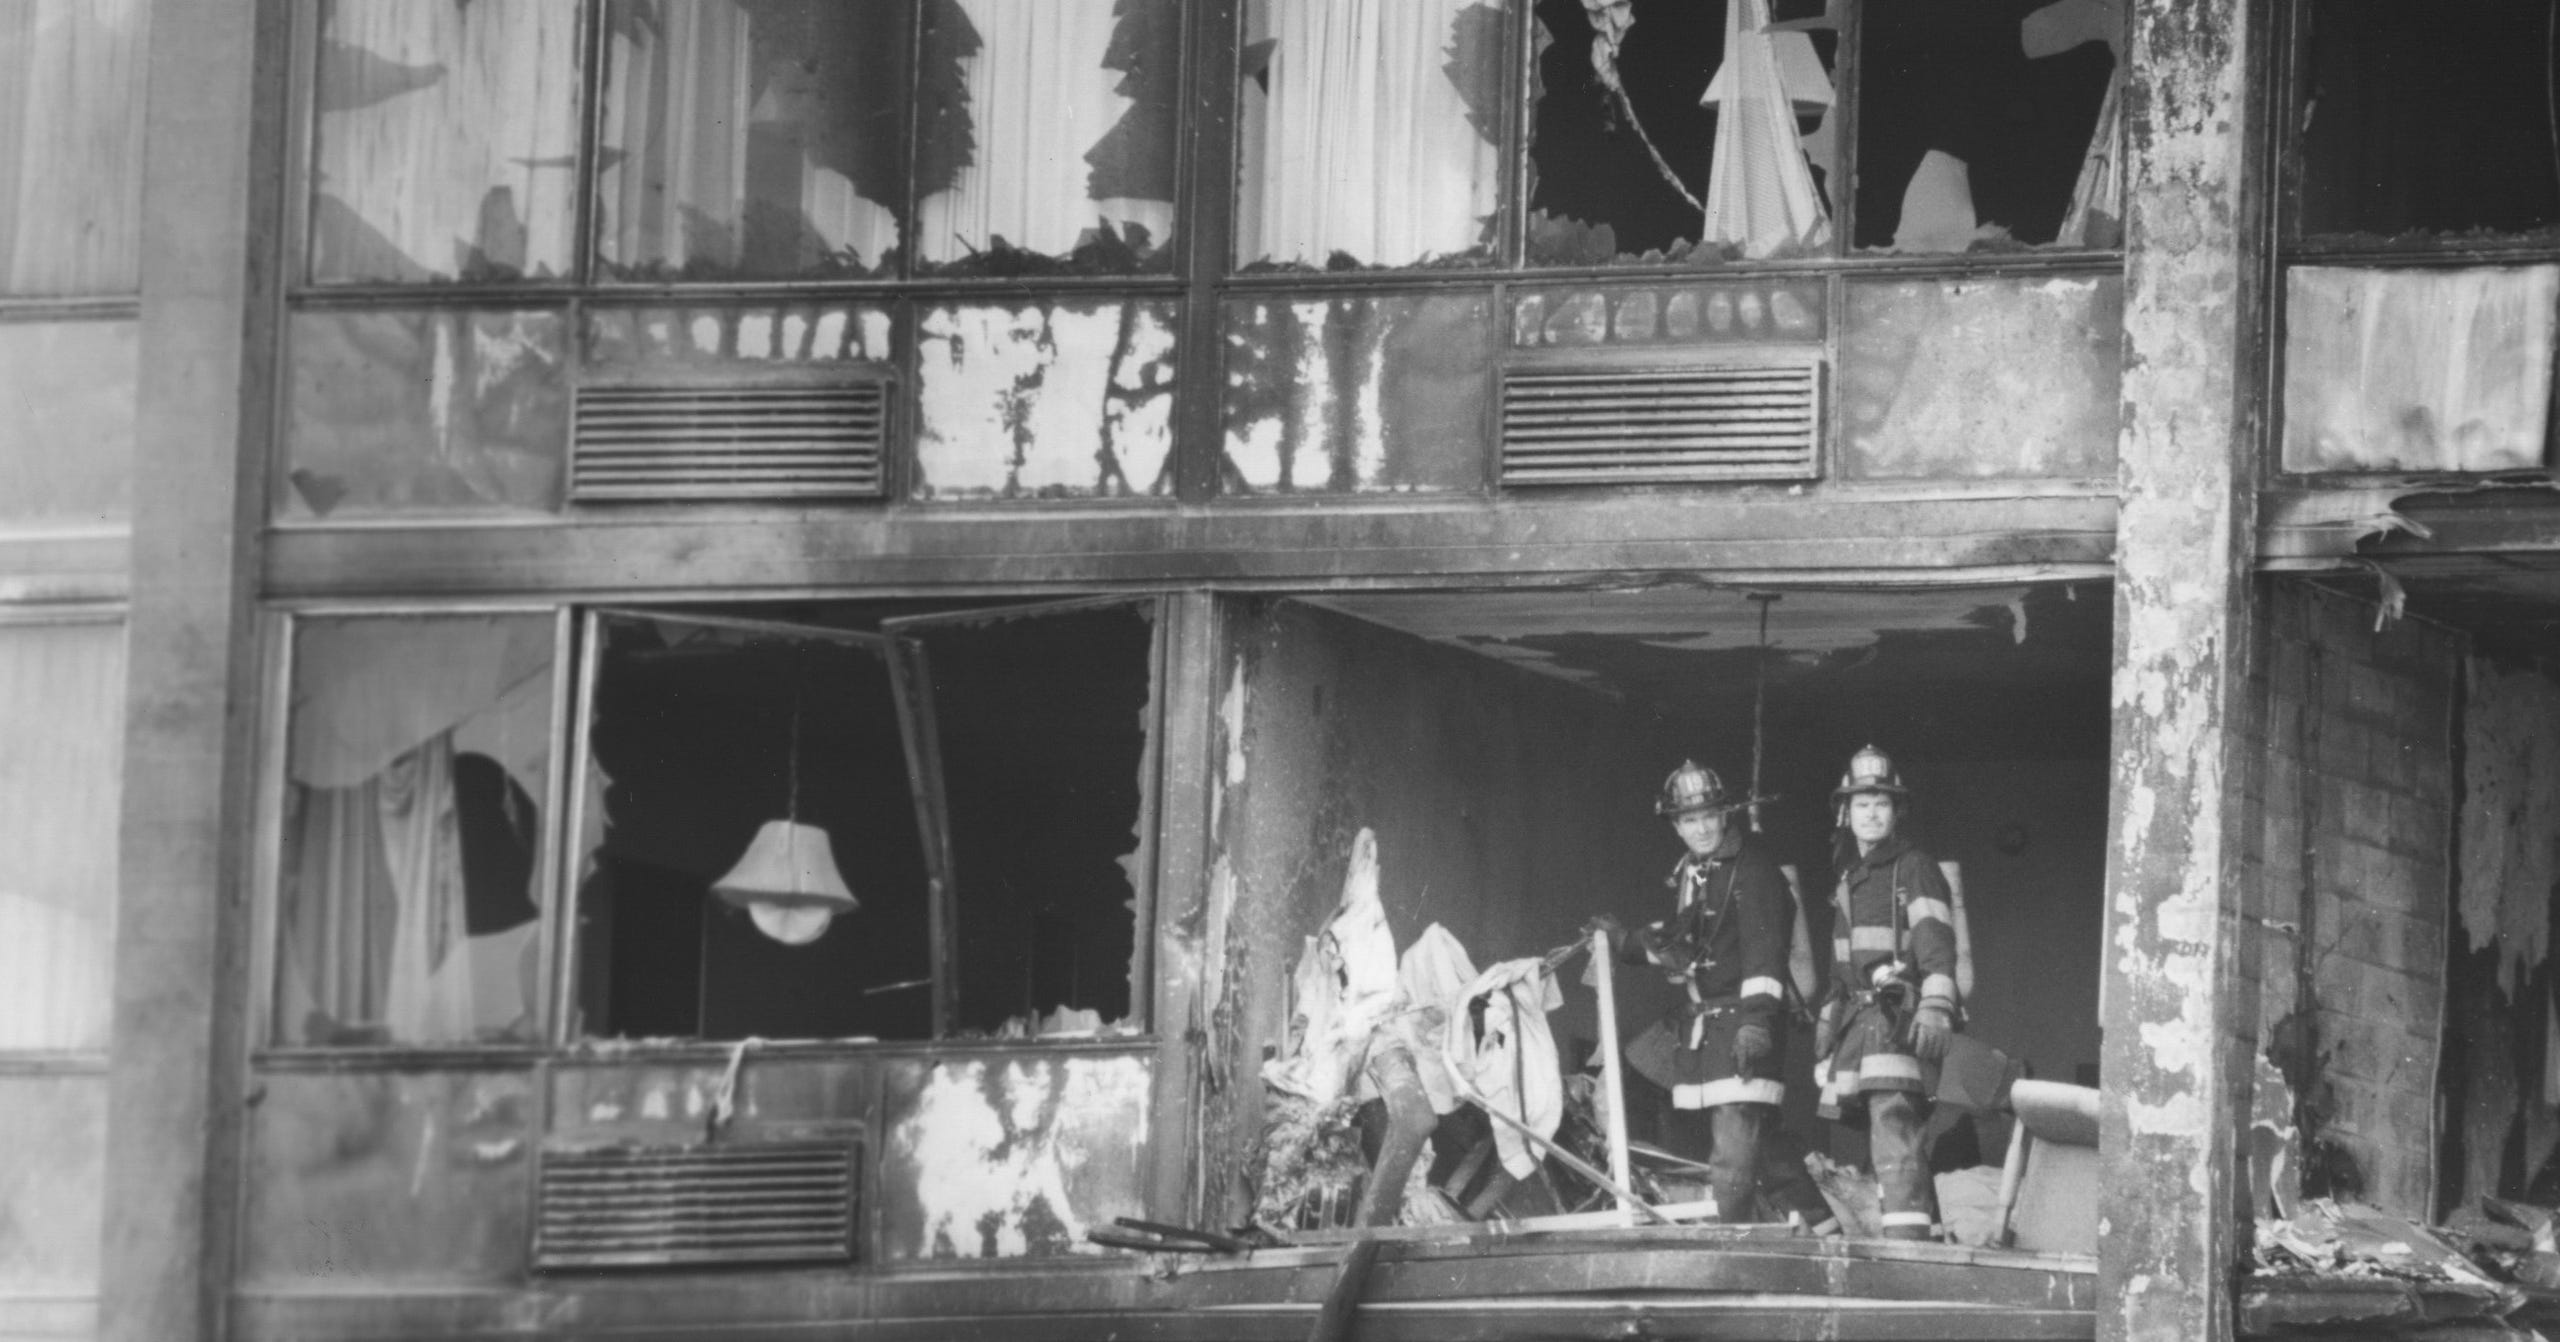 Firefighters review the scene at the Ramada Inn after the hotel was struck by a crashing plane on Oct. 20, 1987. As the plane hit the hotel, the cockpit and engine went into the lobby, killing nine people. Another person died a week later from burn injuries. The wings went into the upper floors of the top of the carport and upper floors of the hotel.